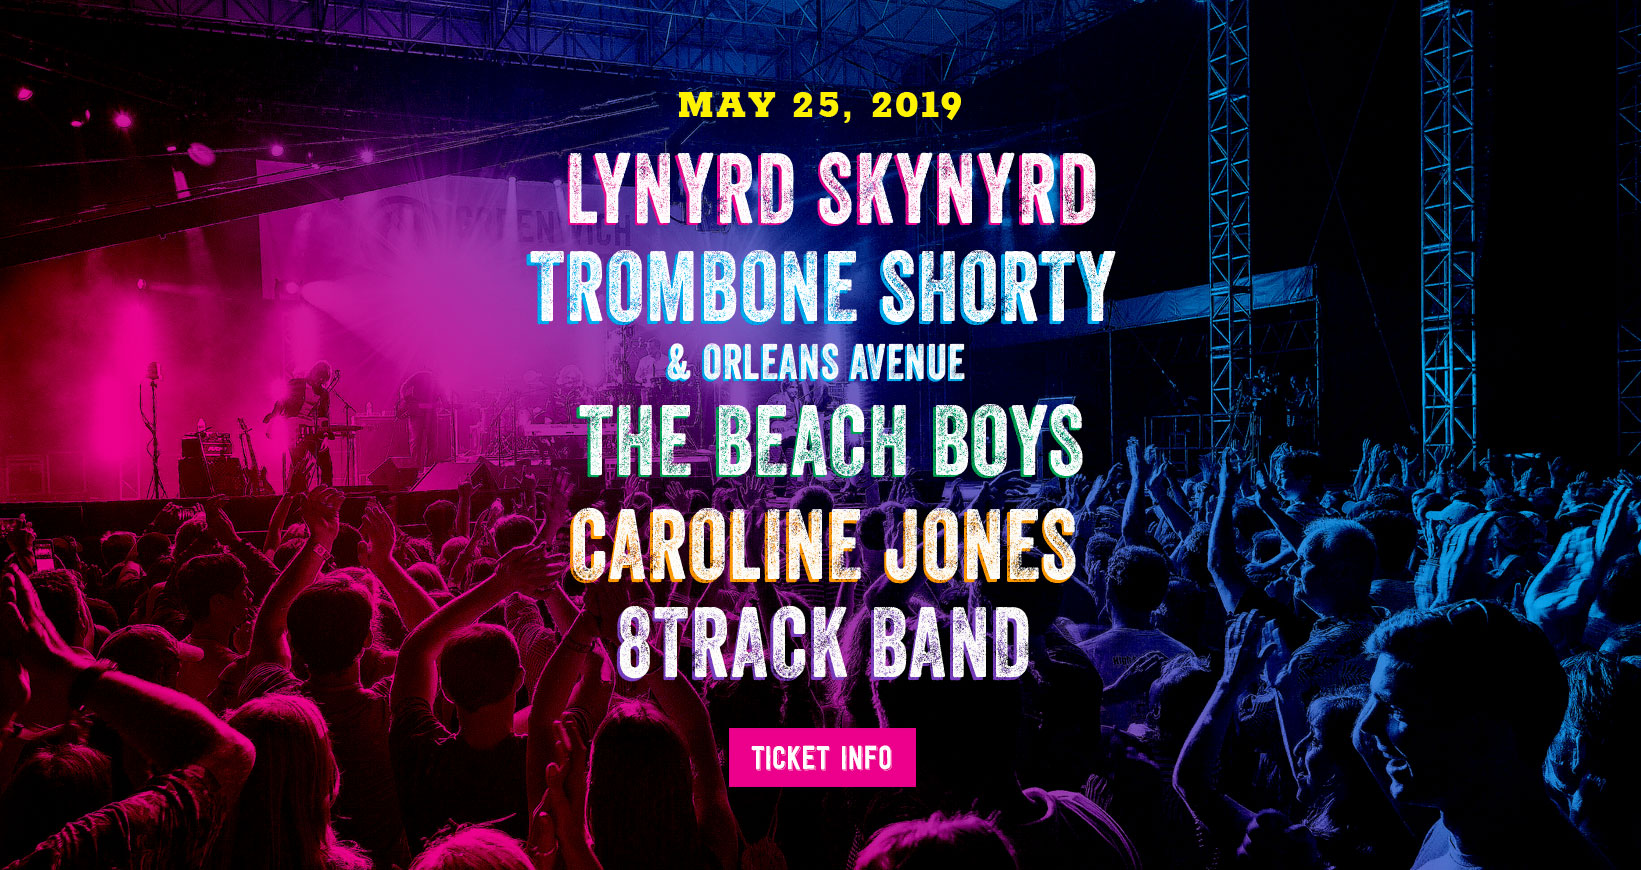 794cfc3449f Greenwich Town Party Announces 2019 Lineup: Lynyrd Skynyrd, Trombone  Shorty, The Beach Boys, More